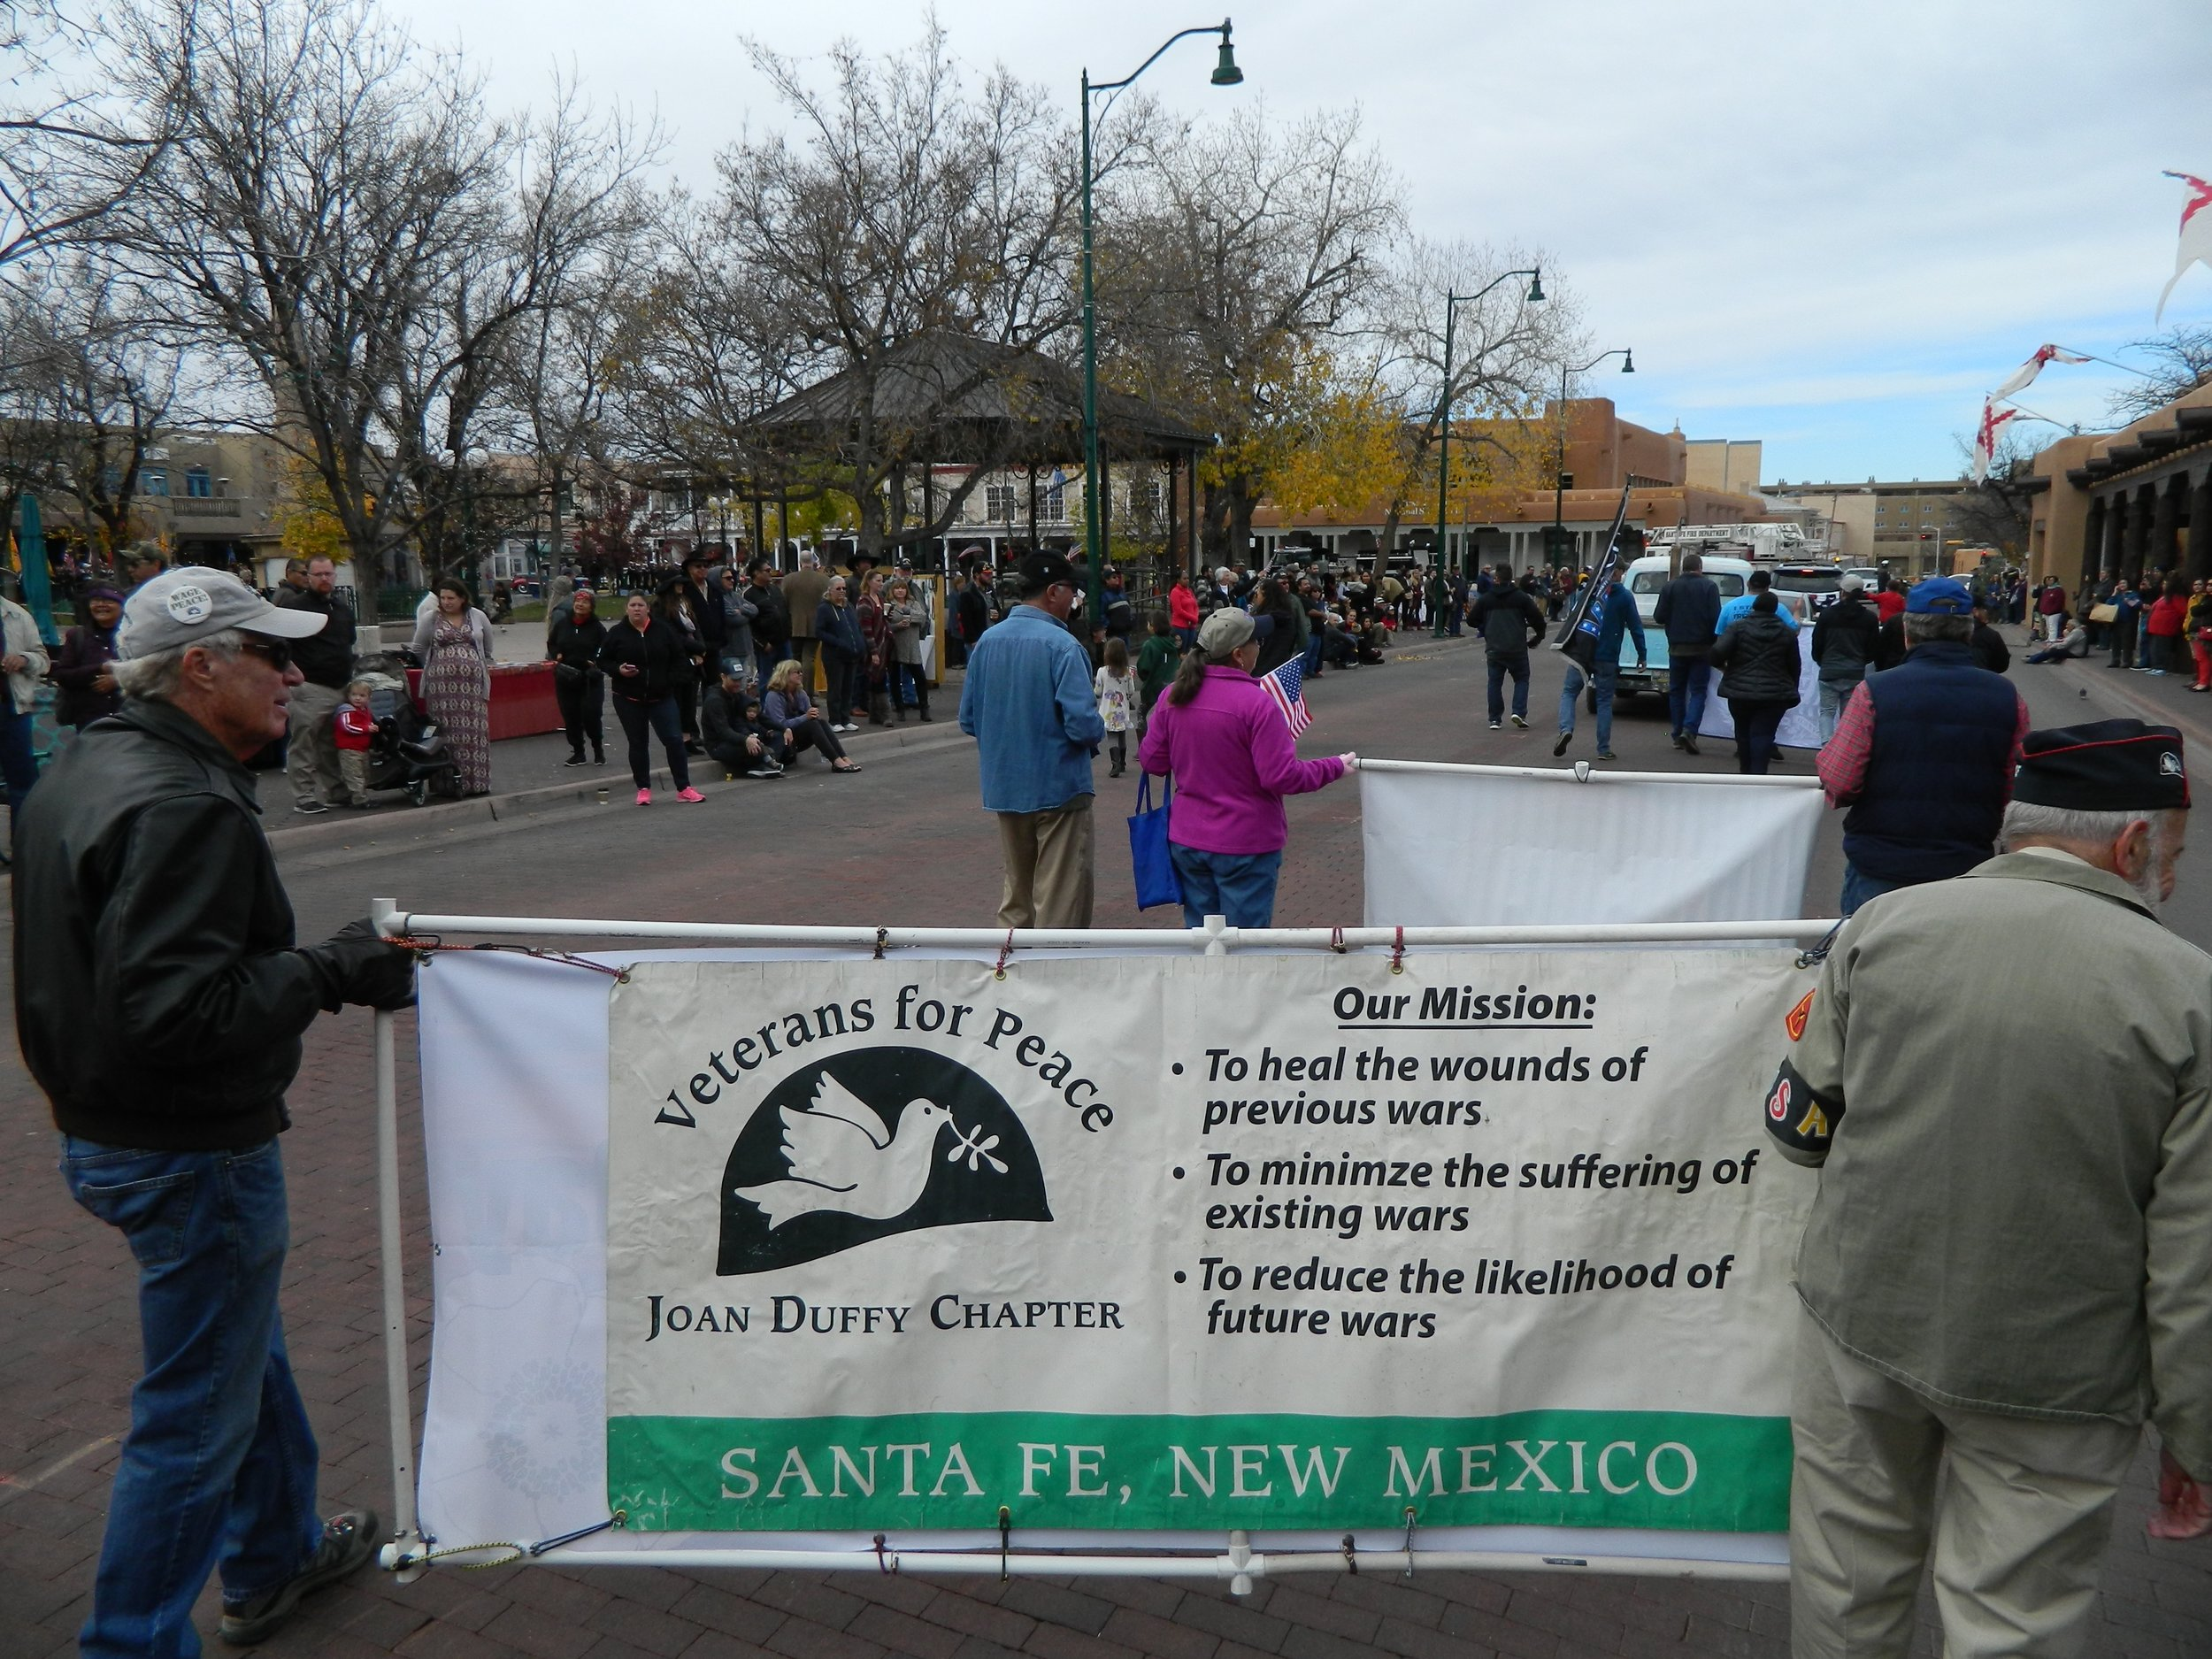 Santa Fe, NM chapter of Veterans for Peace marching in the annual Veterans Day/Armistice Day parade.